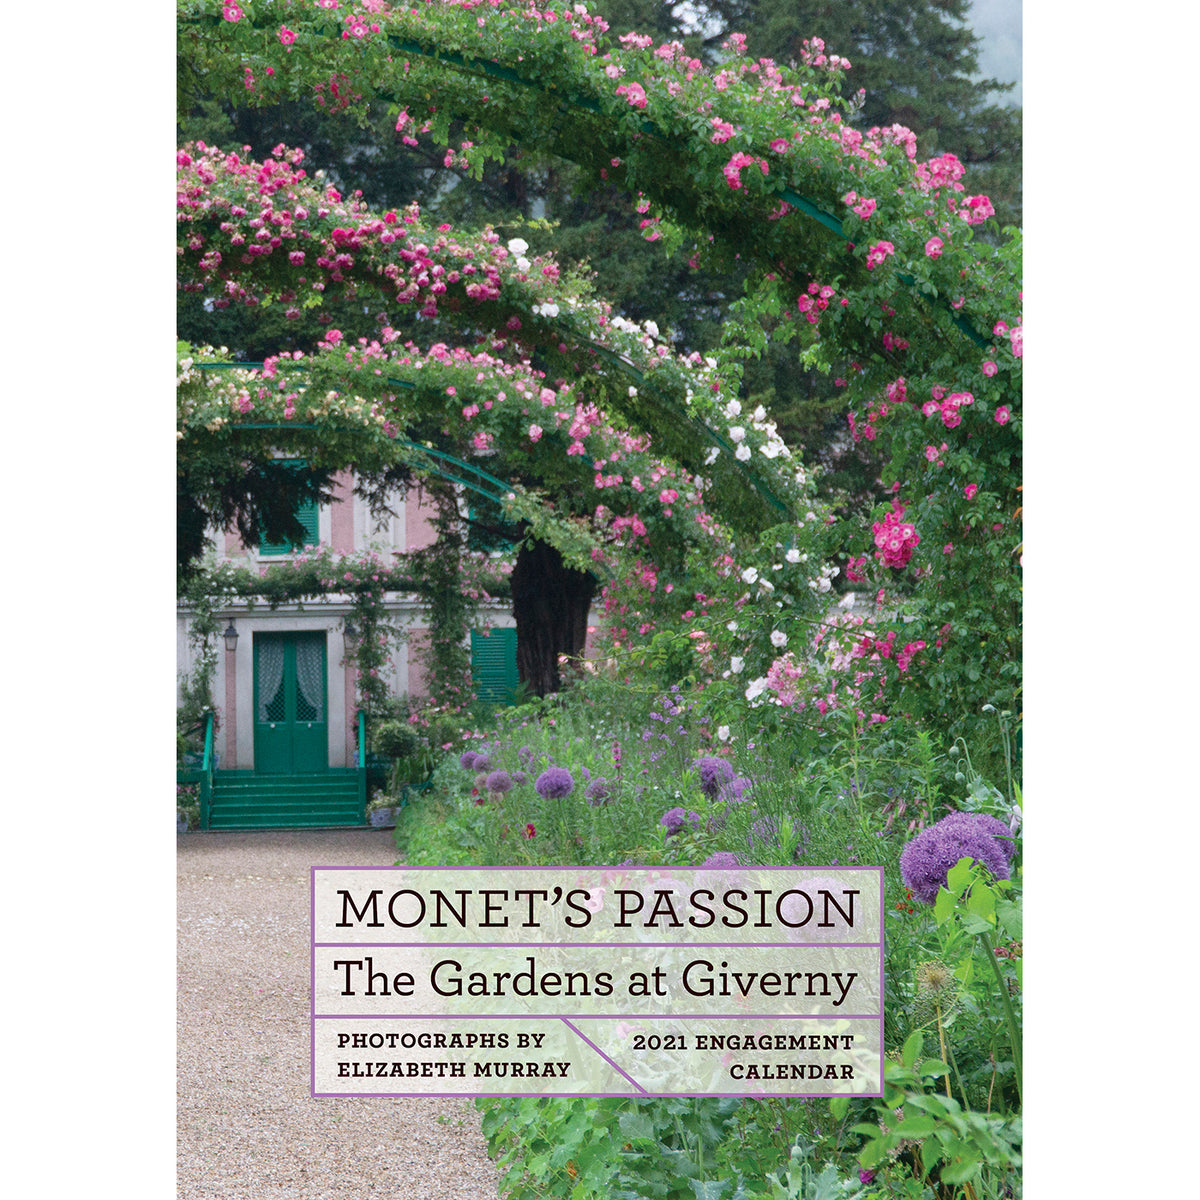 2021 Engagement Calendar - Monet's Passion: The Gardens at Giverny